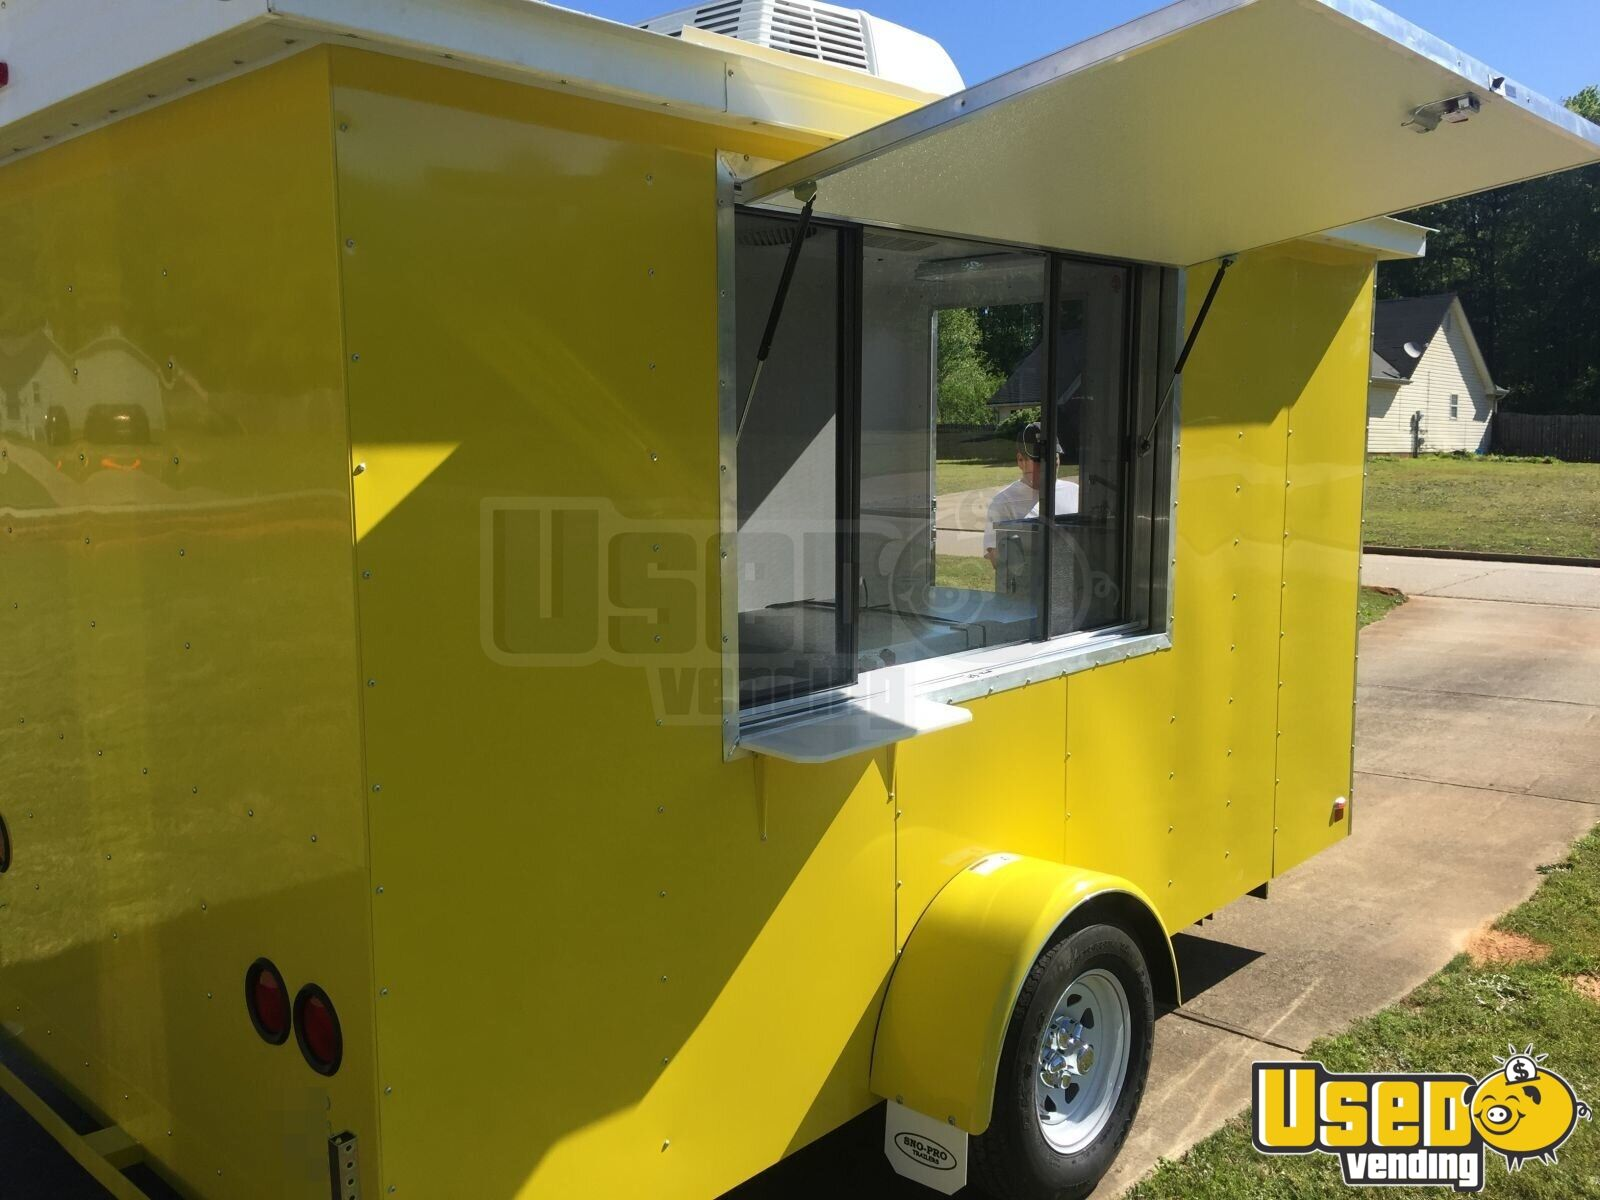 2013 Shaved Ice Concession Trailer Snowball Trailer 21 Alabama for Sale - 21